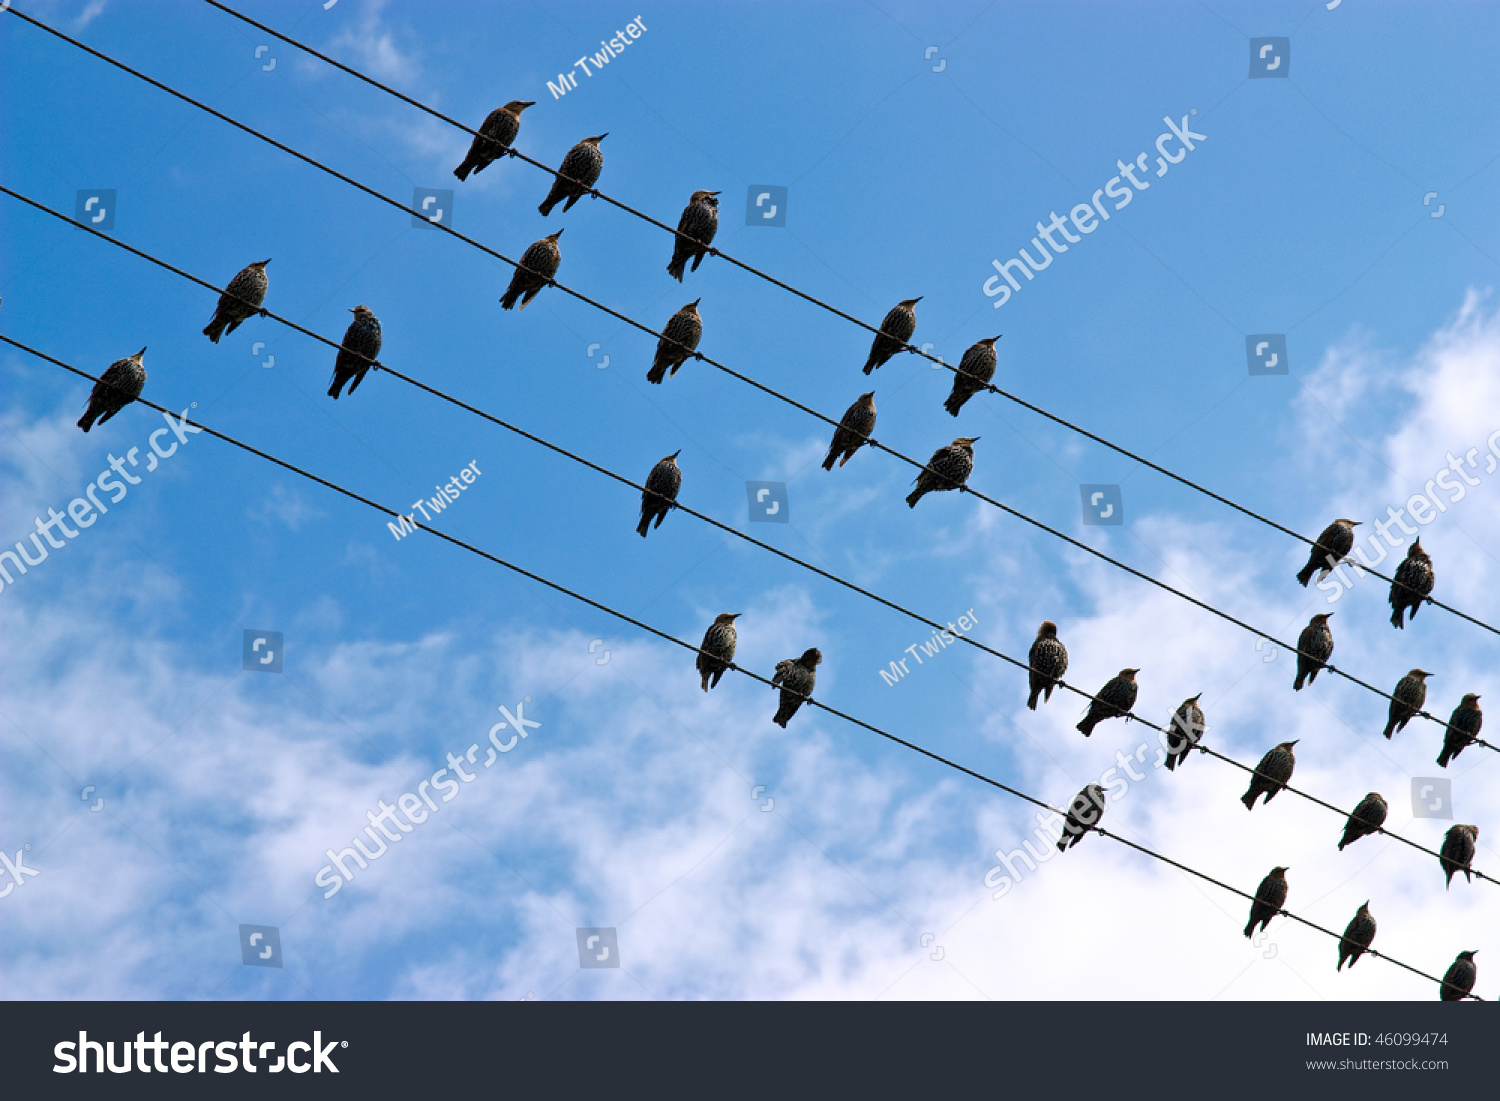 Birds Lined On Telephone Lines Against Stock Photo (Royalty Free ...